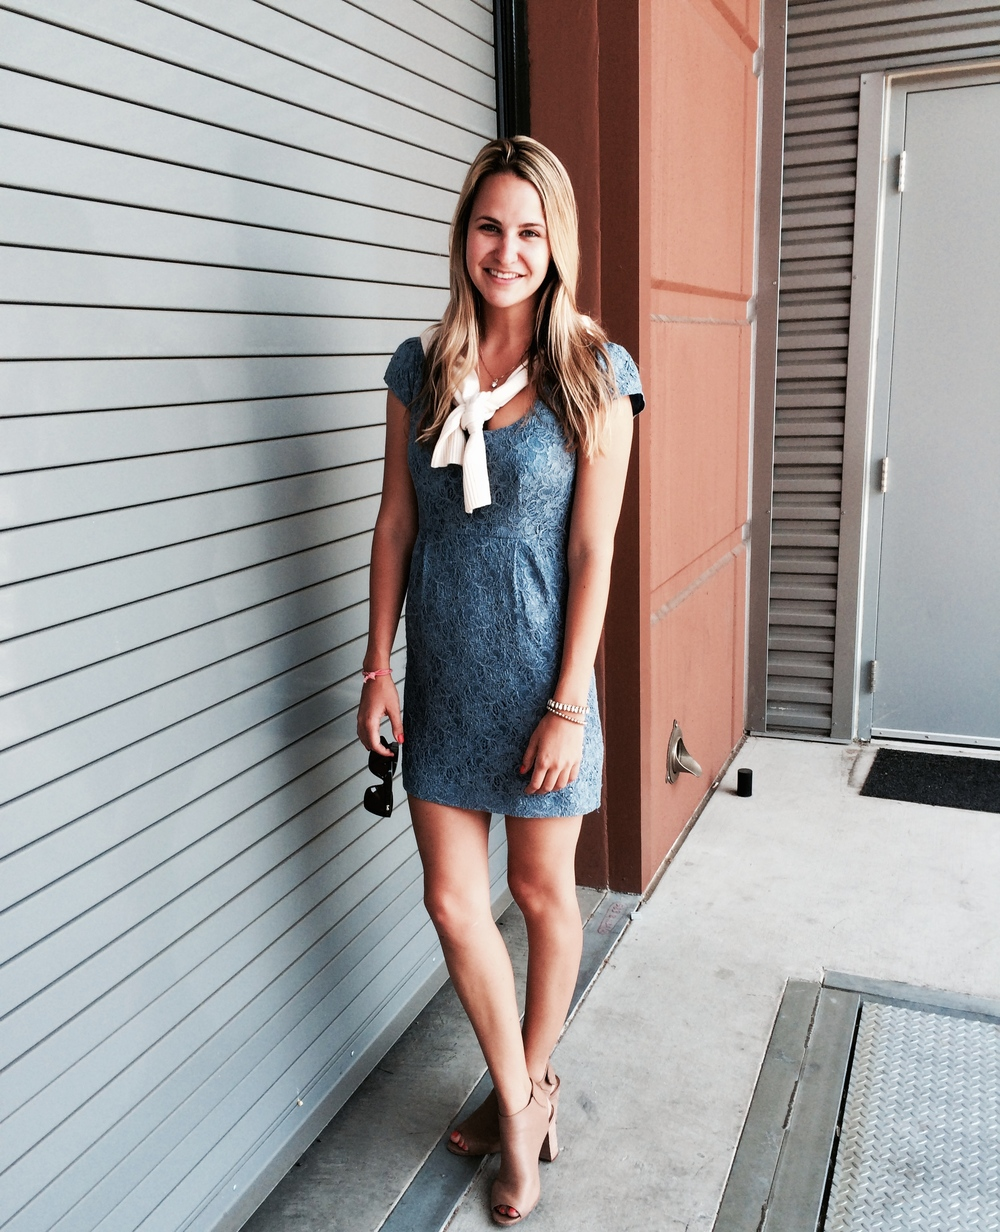 Cashmere Cardigan: J.Crew; Dress: Forever 21; Sandals: Steve Madden; Photos: Kristine Constantino www.linkedin.com/in/kristineconstantino